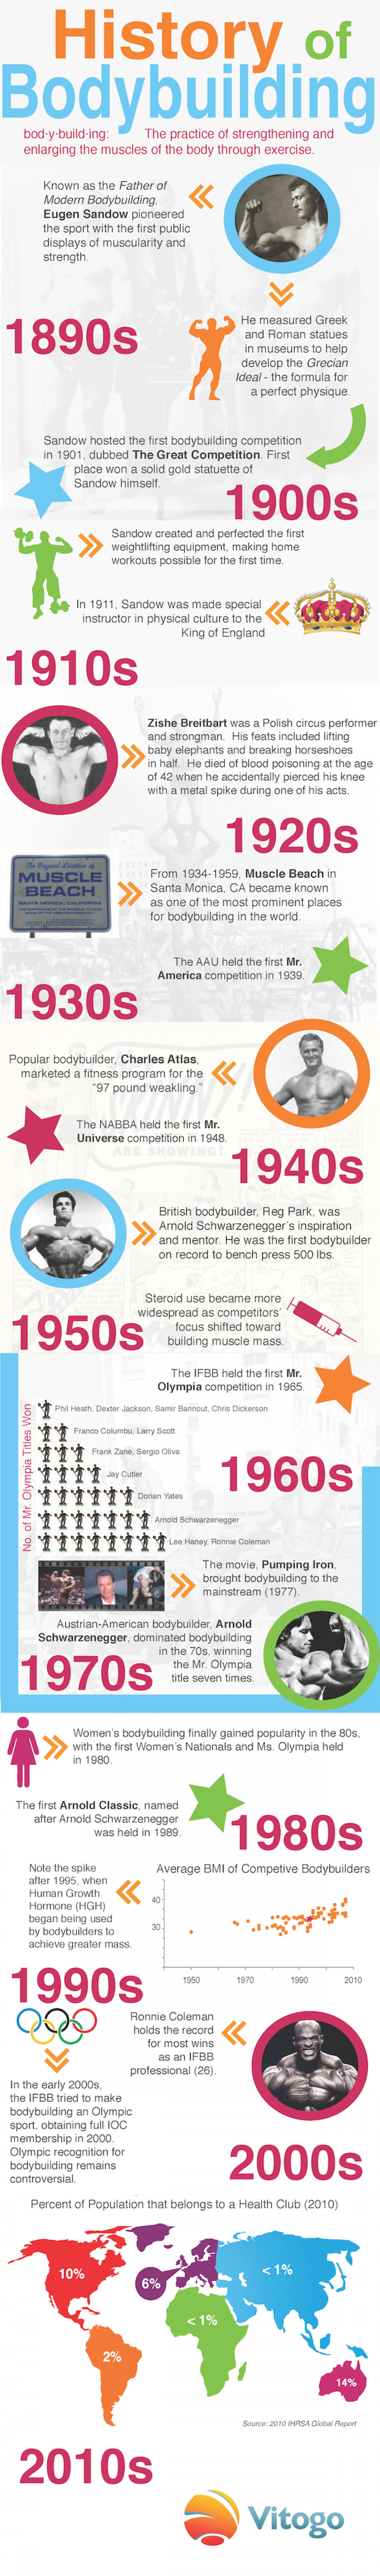 History of Bodybuilding Infographic